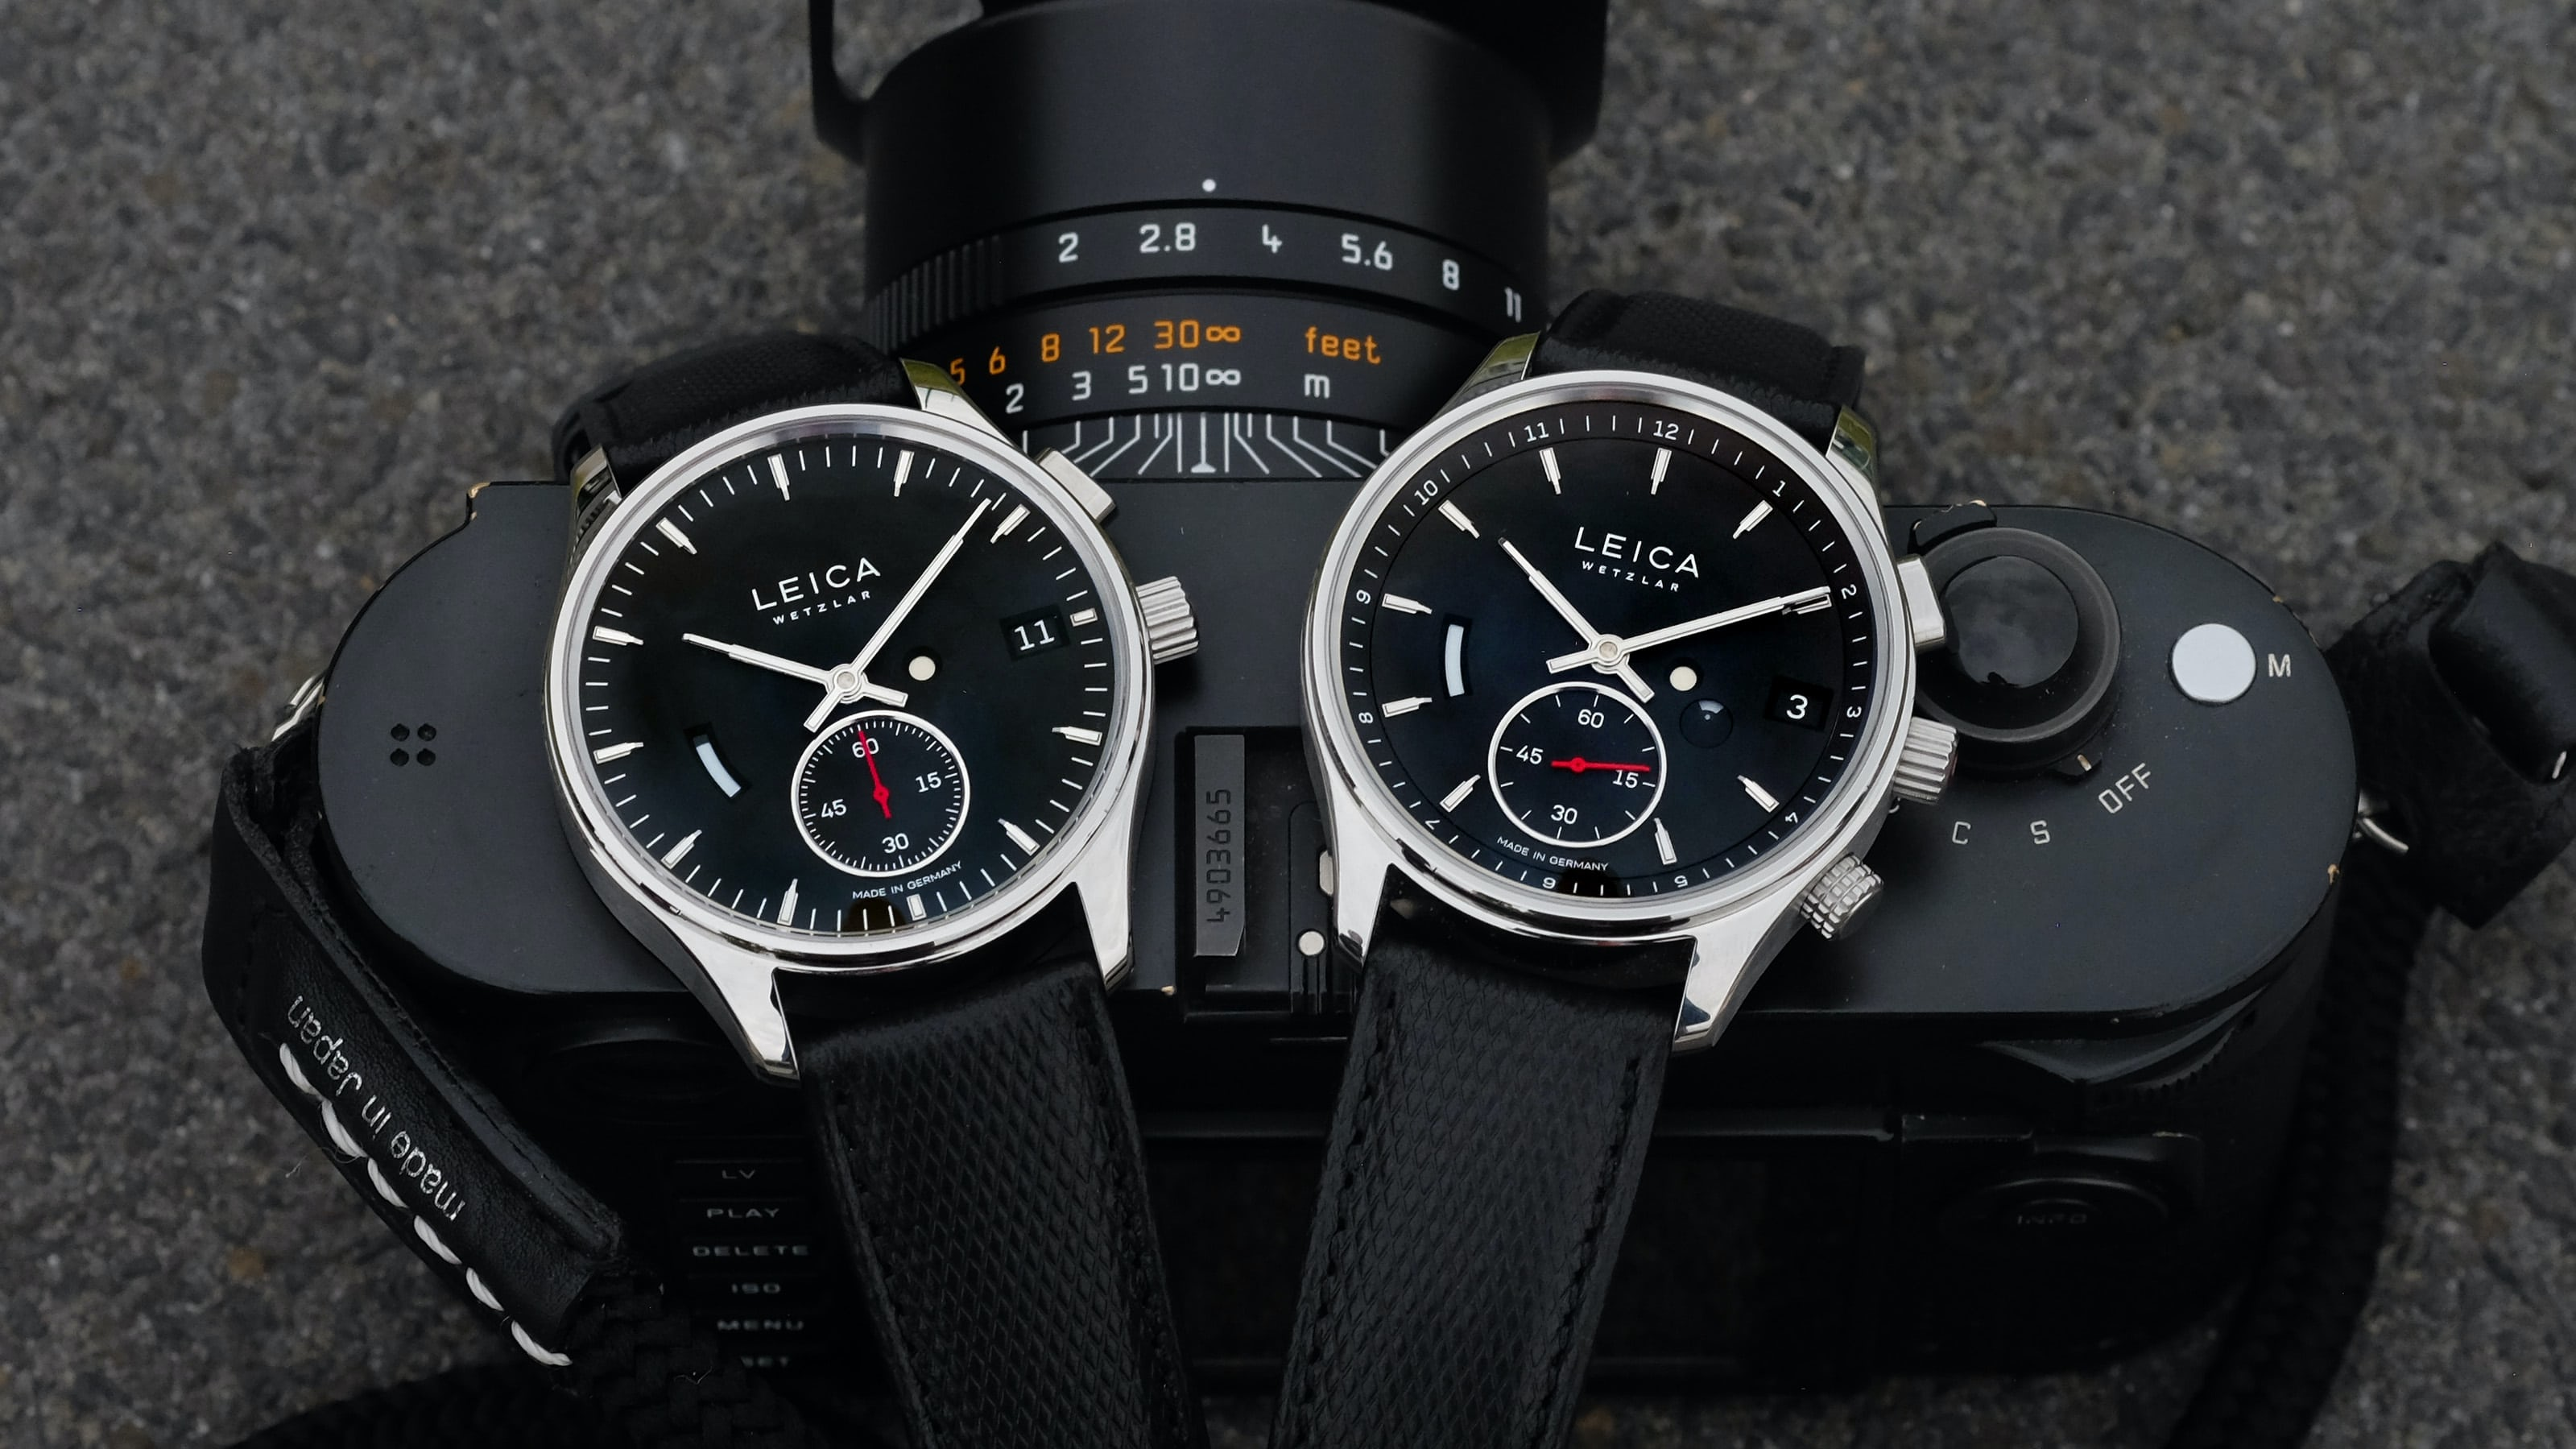 Introducing: The Leica L1 And L2 Watches (Live Pics & Details)